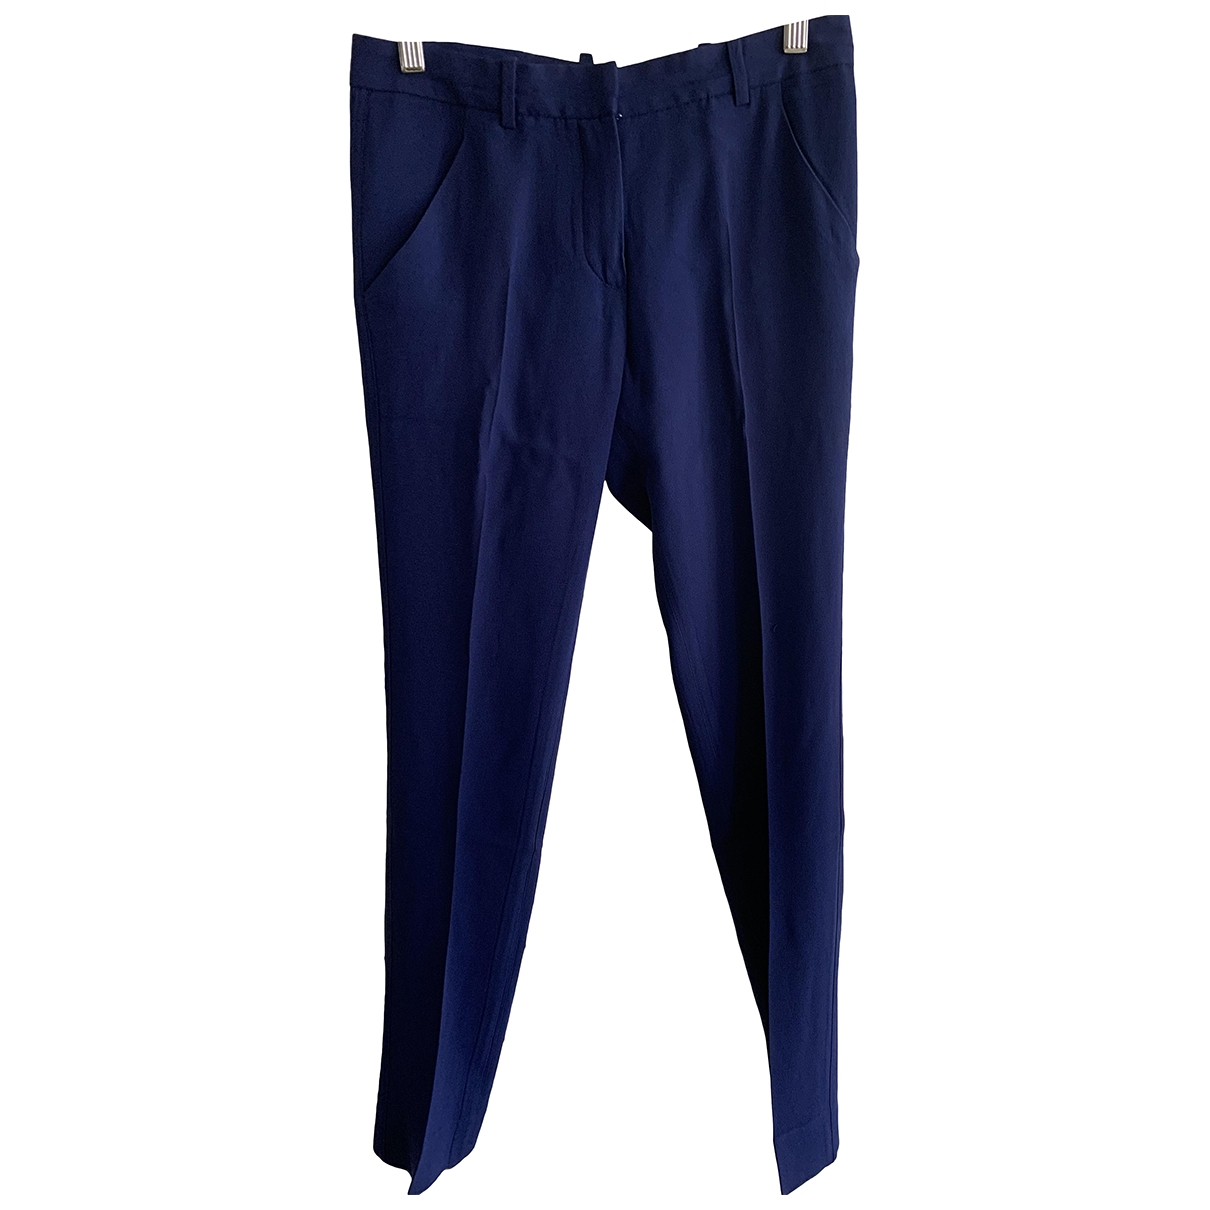 Balenciaga \N Blue Trousers for Women 34 FR